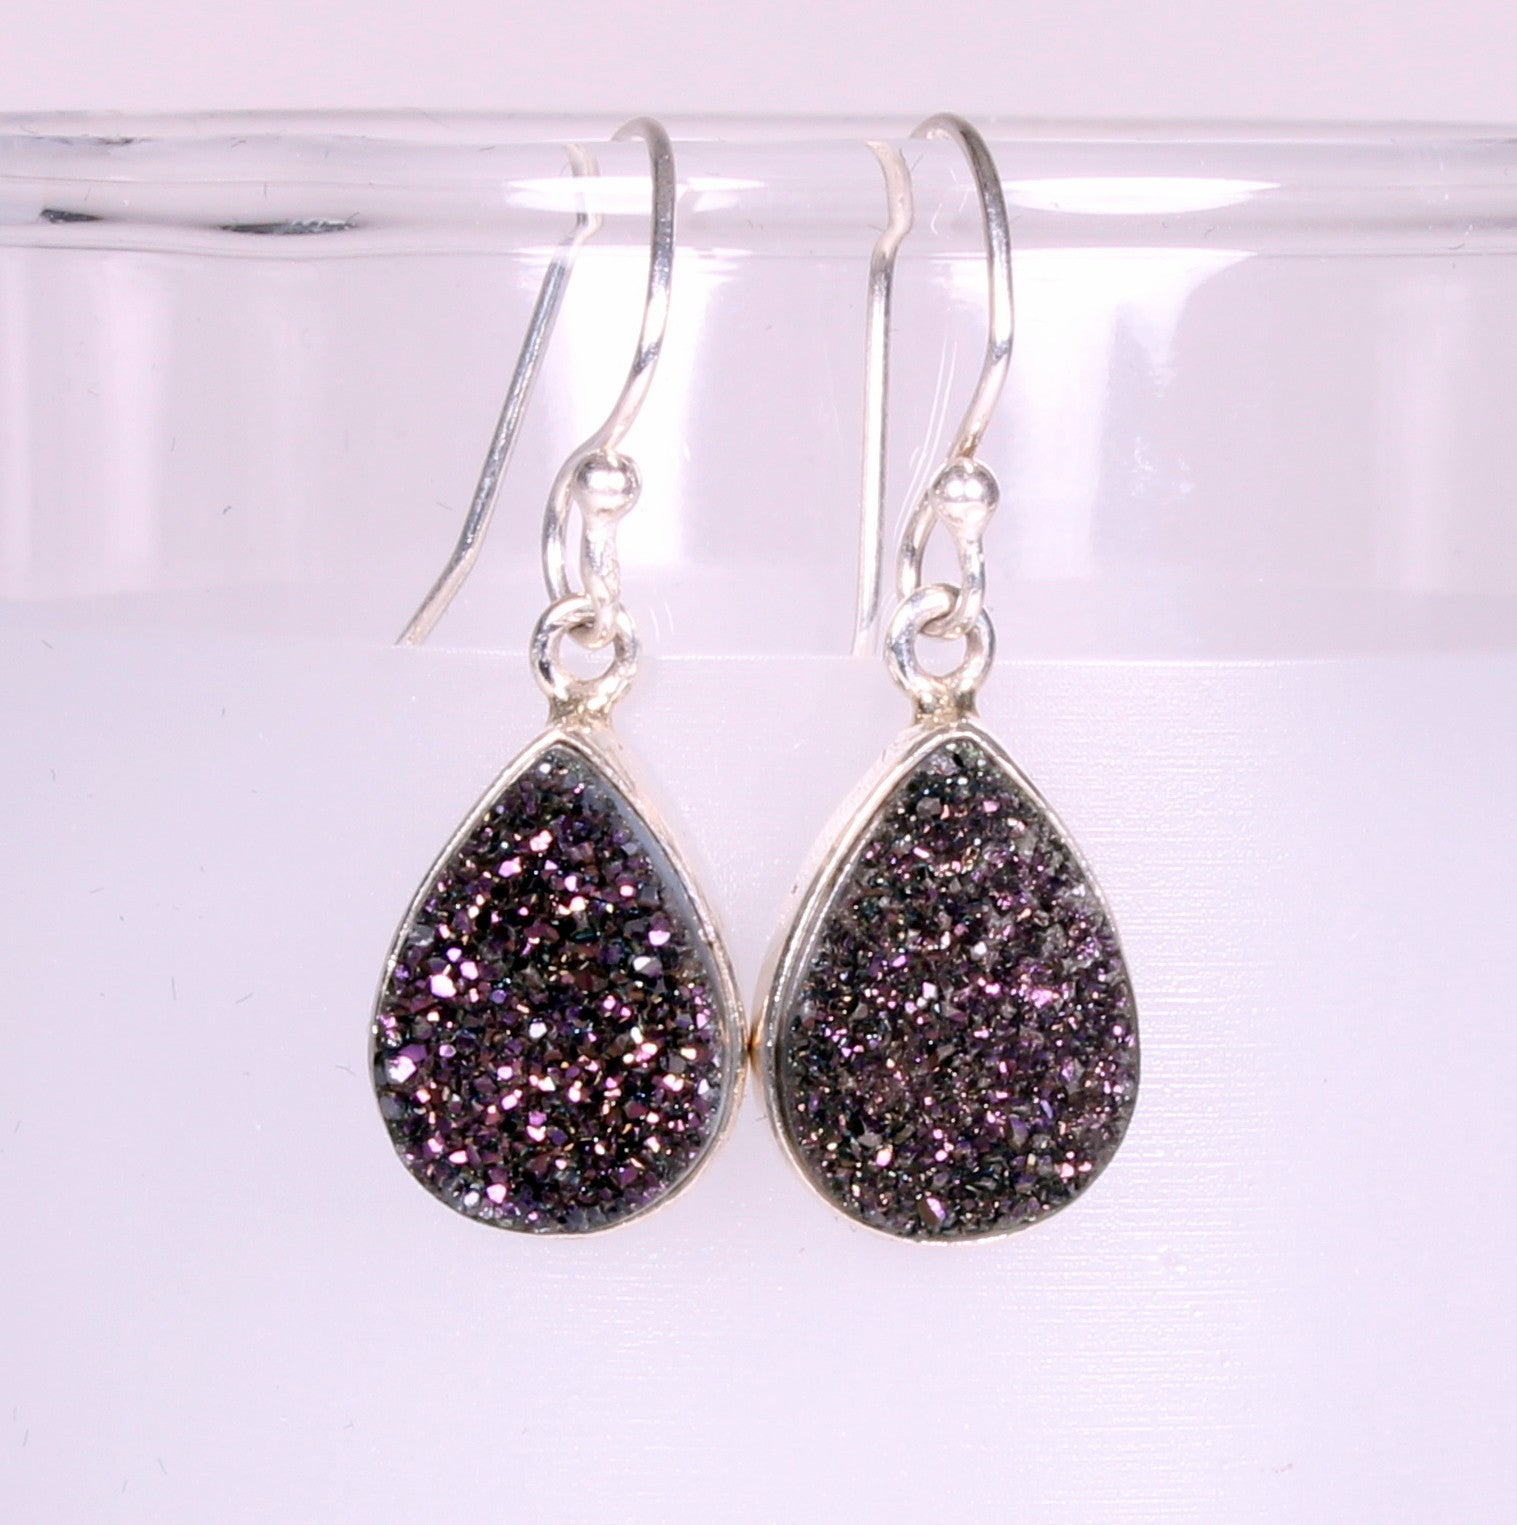 Druzy Cabachon Sterling Silver Earrings